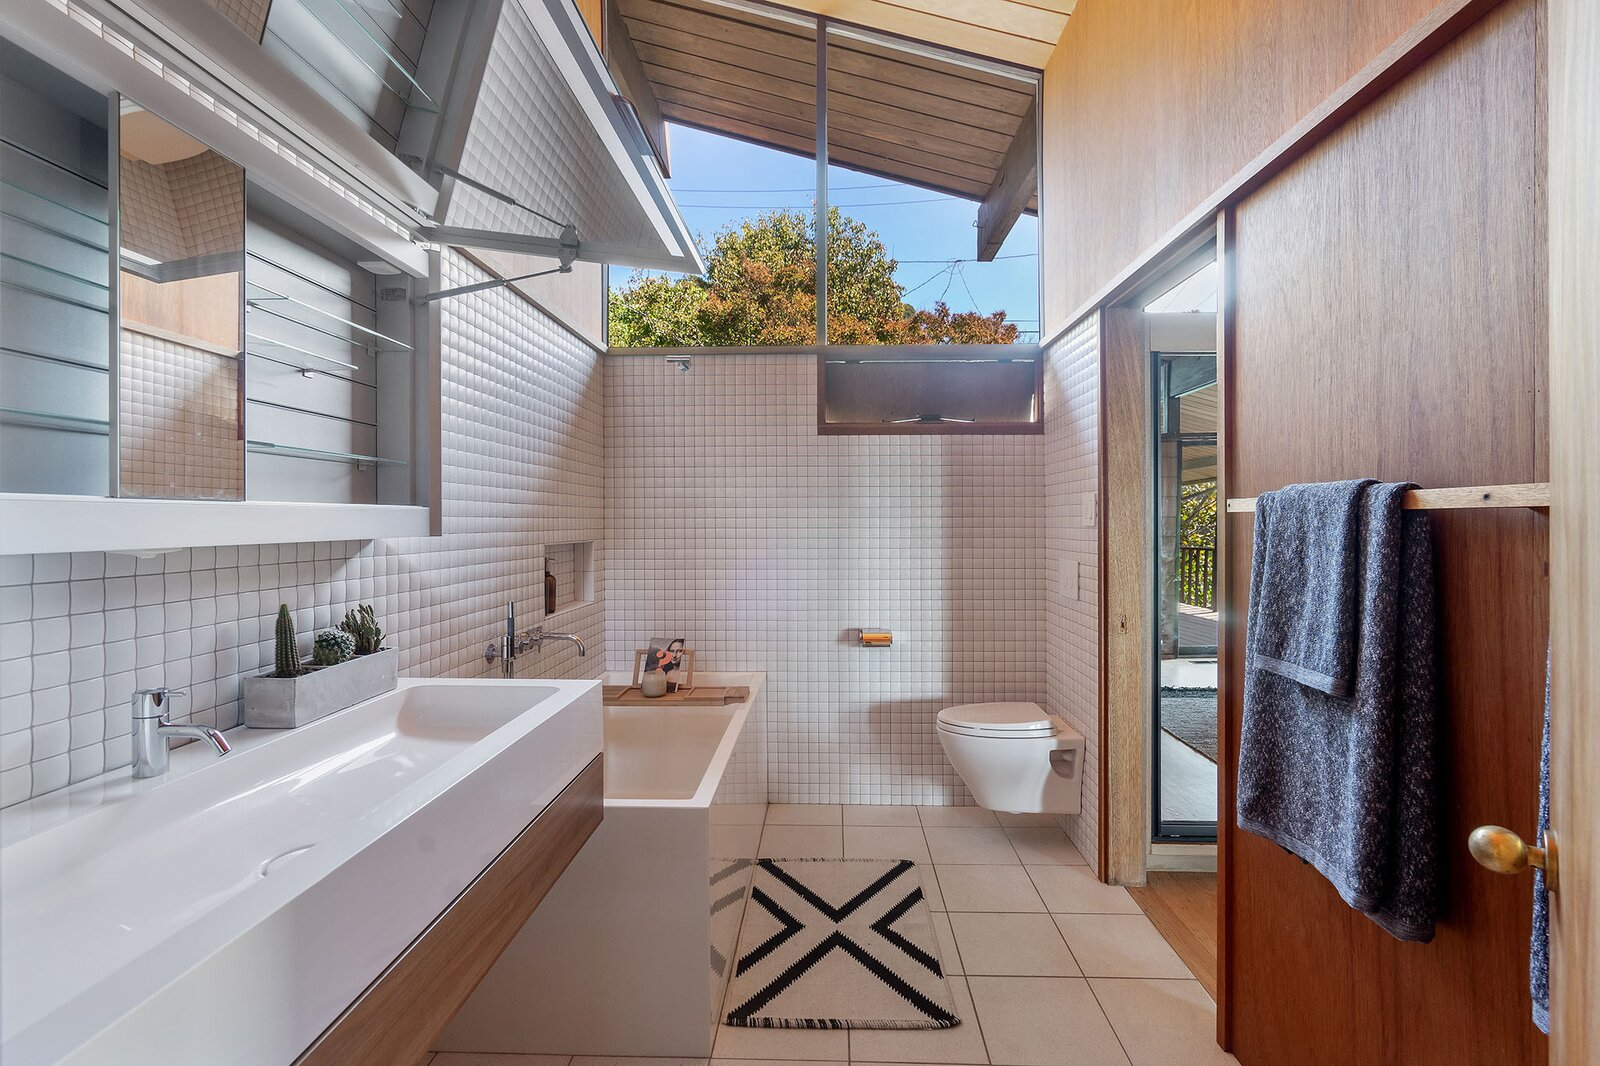 Bathroom in the Hargrove Residence by Roger Lee